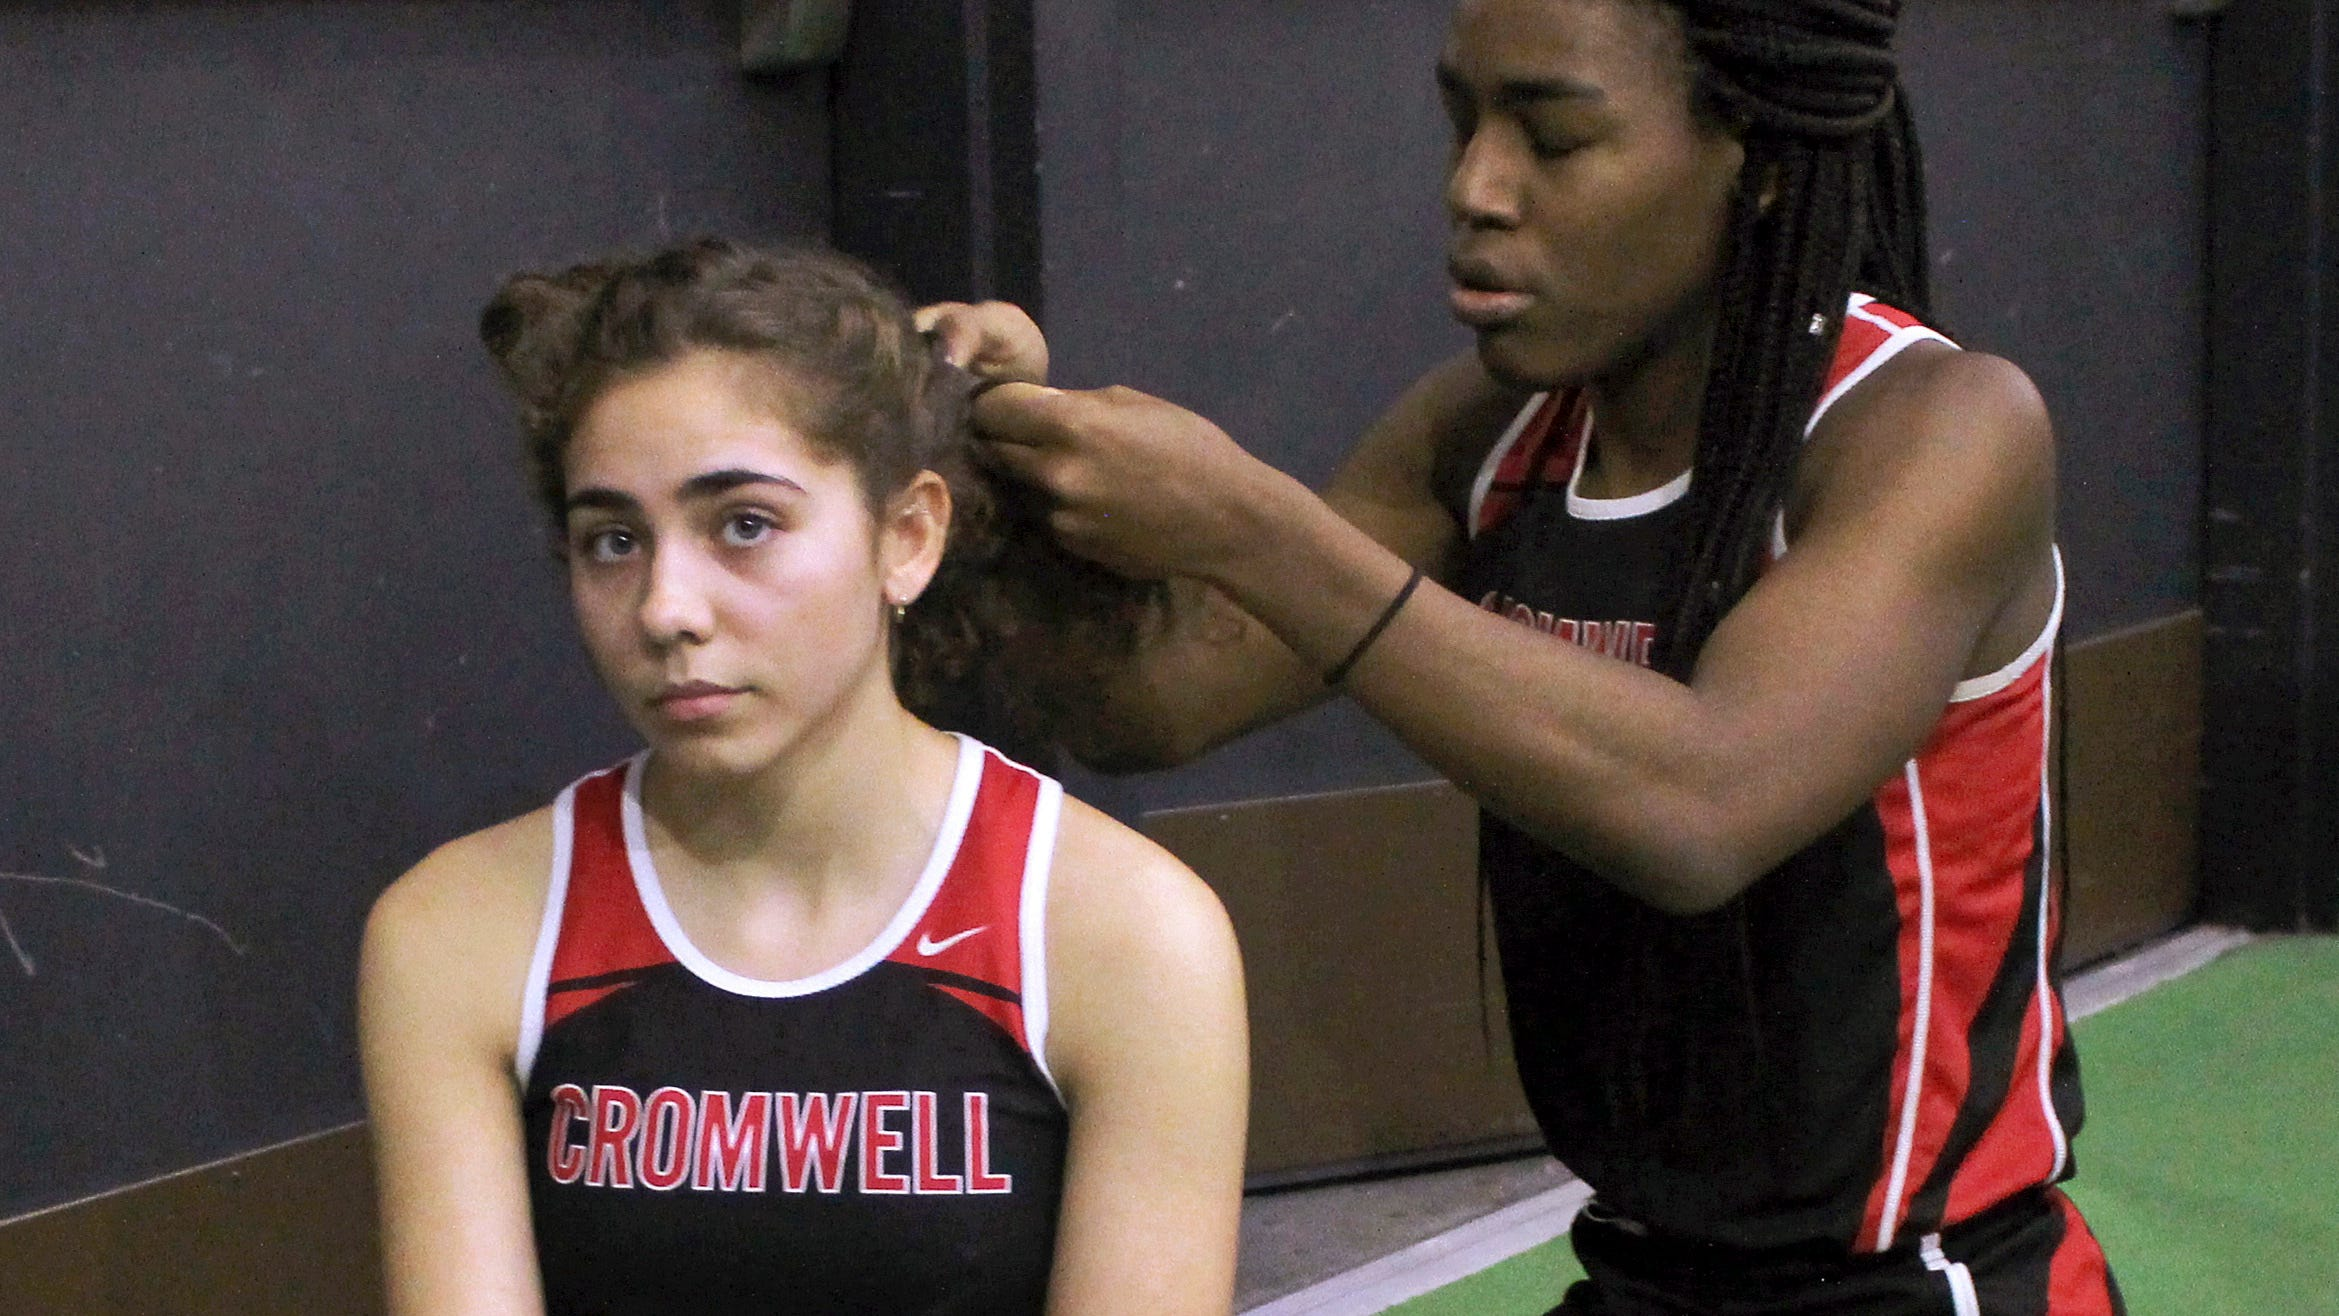 In this Feb. 7, 2019 file photo, Cromwell High School transgender athlete Andraya Yearwood, right, braids the hair of teammate Taylor Santos during a break at a track meet at Hillhouse High School in New Haven, Conn.